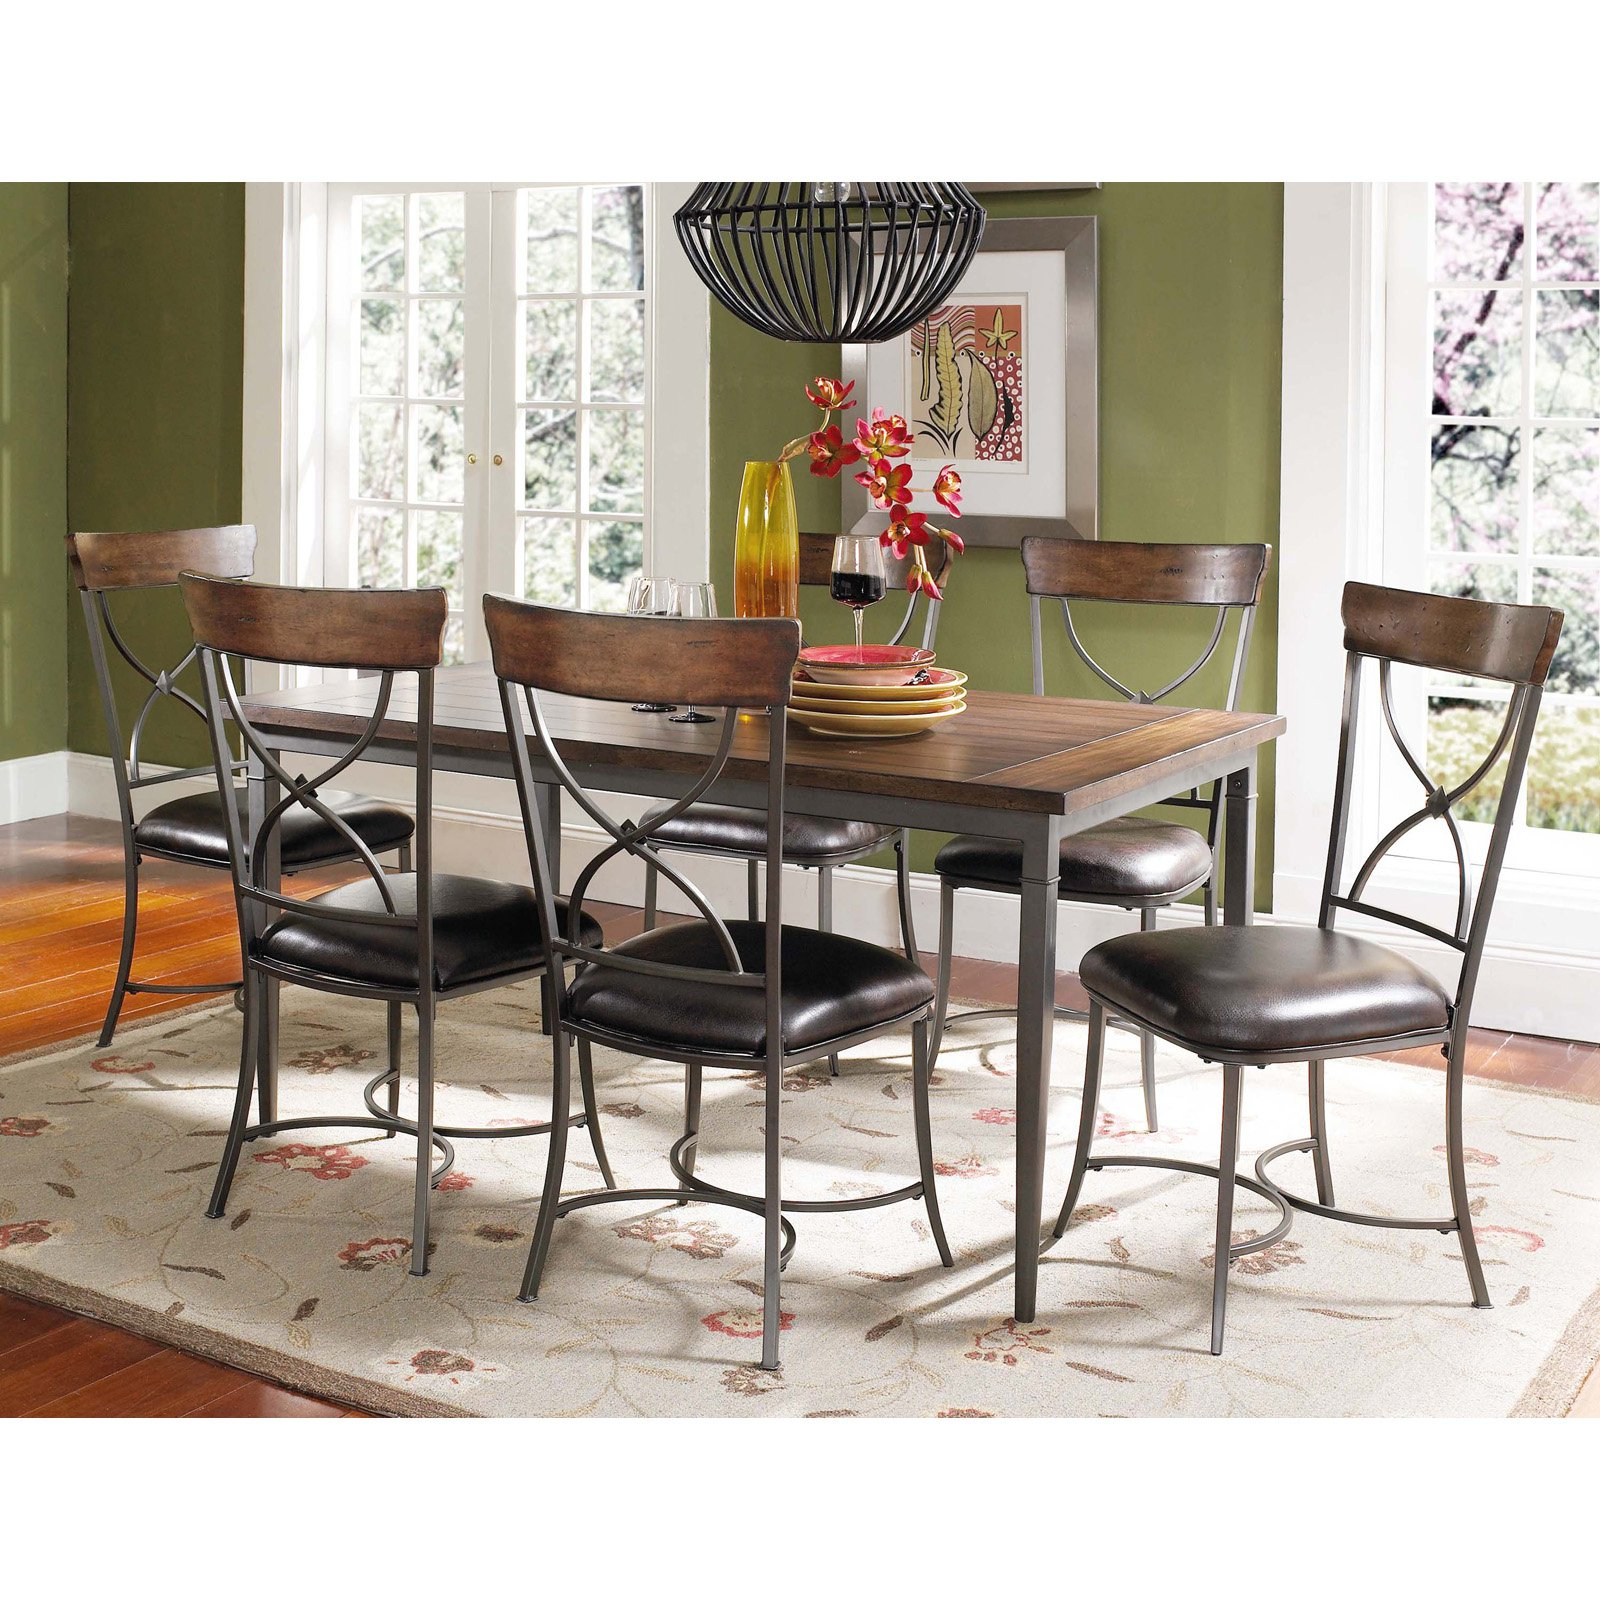 Hillsdale Cameron 7 Piece Rectangle Wood and Metal Dining Table Set with X-Back Chairs